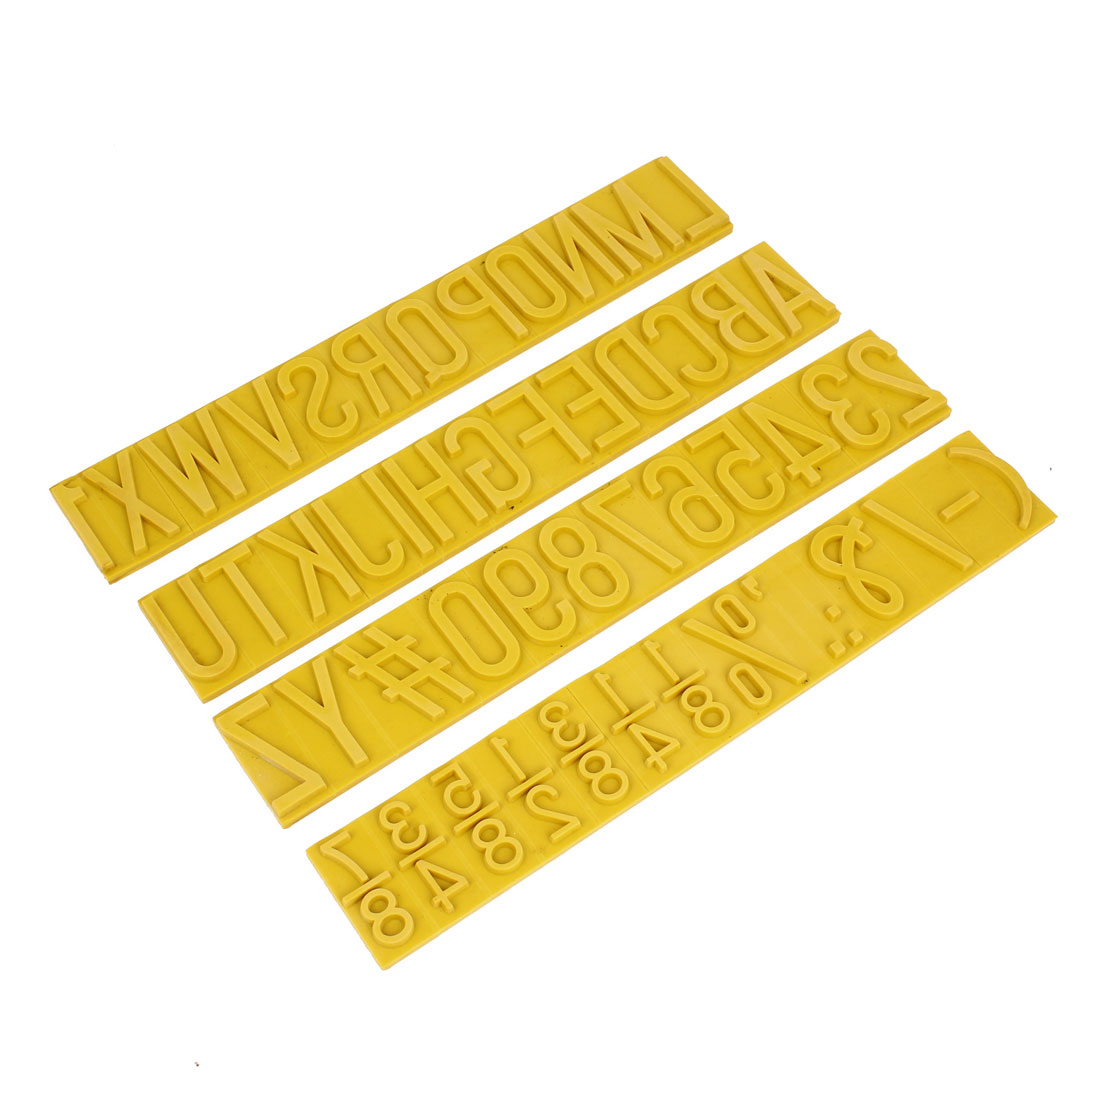 7mm Thick Letter Number Rubber Stamp Coder Set for Ink Stamping Machine